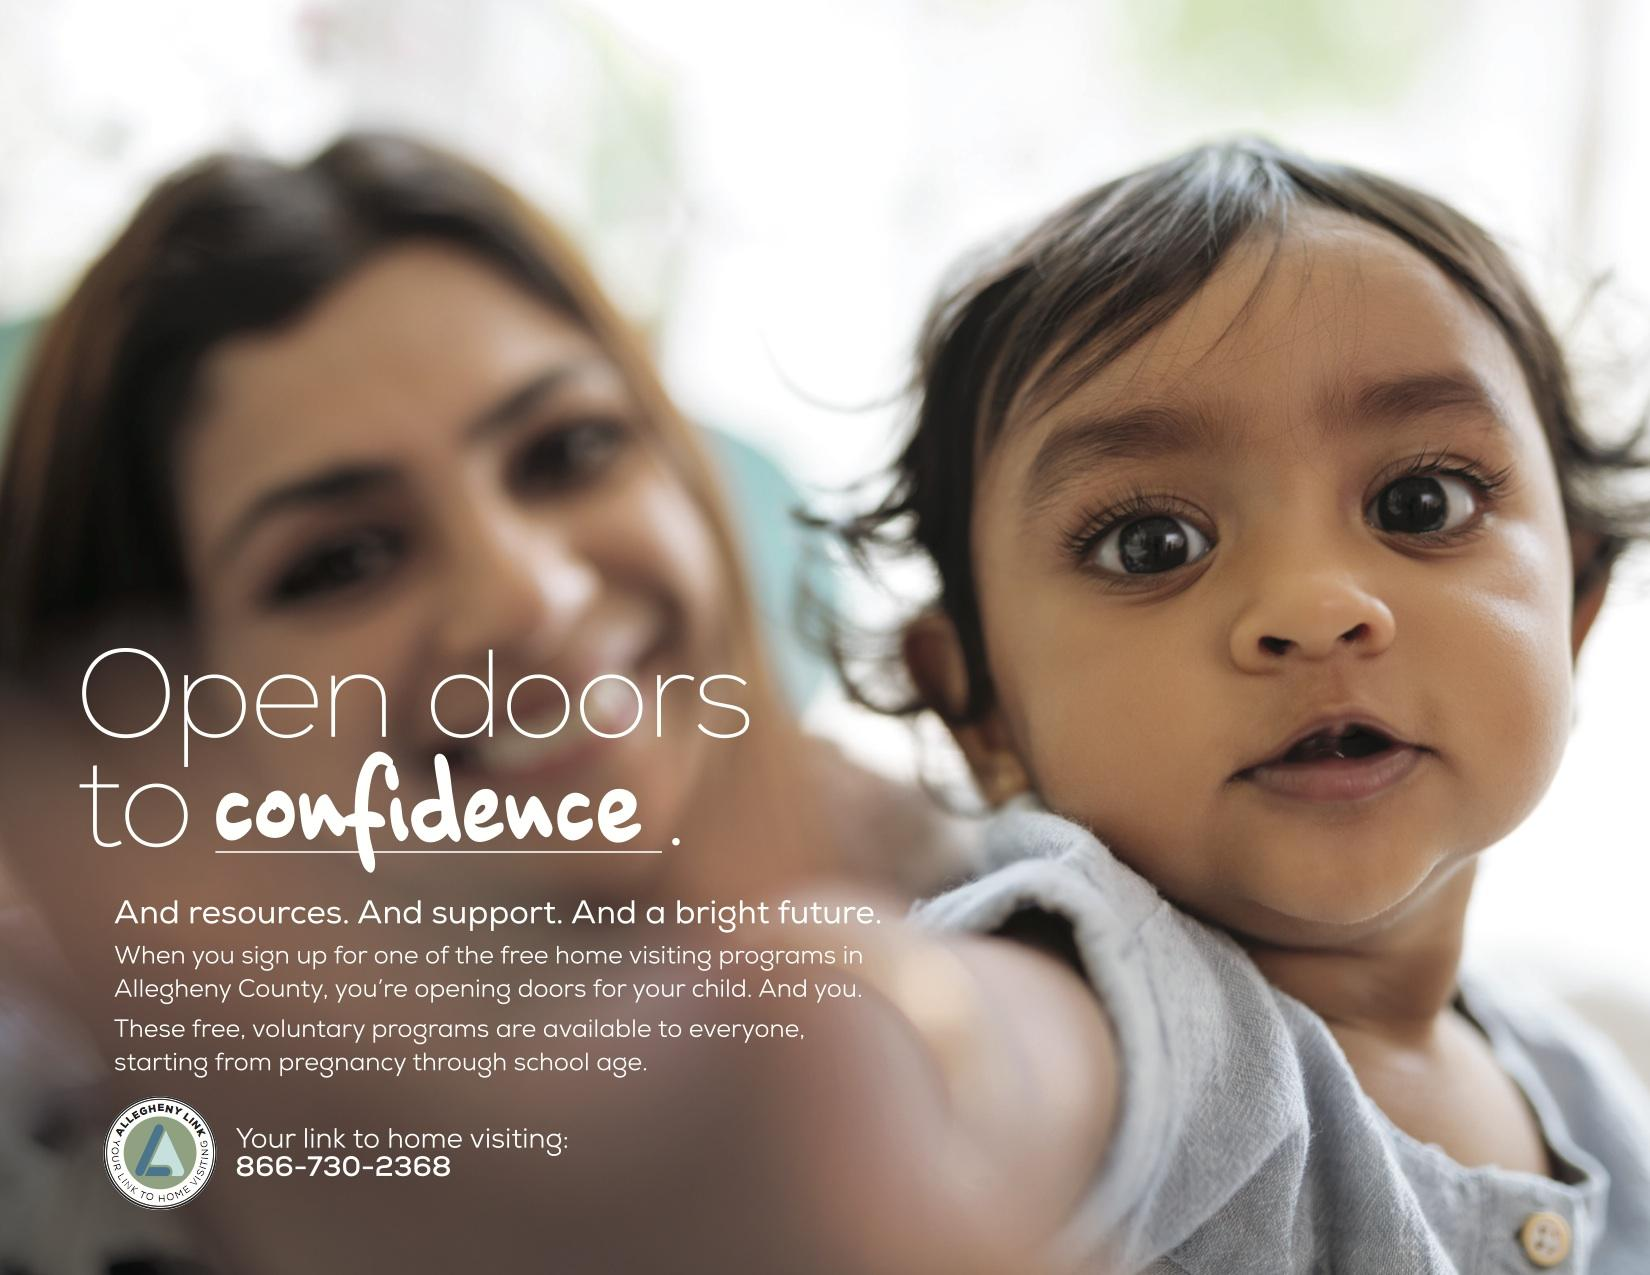 The \ Open Doors to Home Visiting\  c&aign encourages Allegheny County families to seek free home visit services.  sc 1 st  90.5 WESA & Allegheny County Health Agencies Promote Home Visit Programs   90.5 WESA